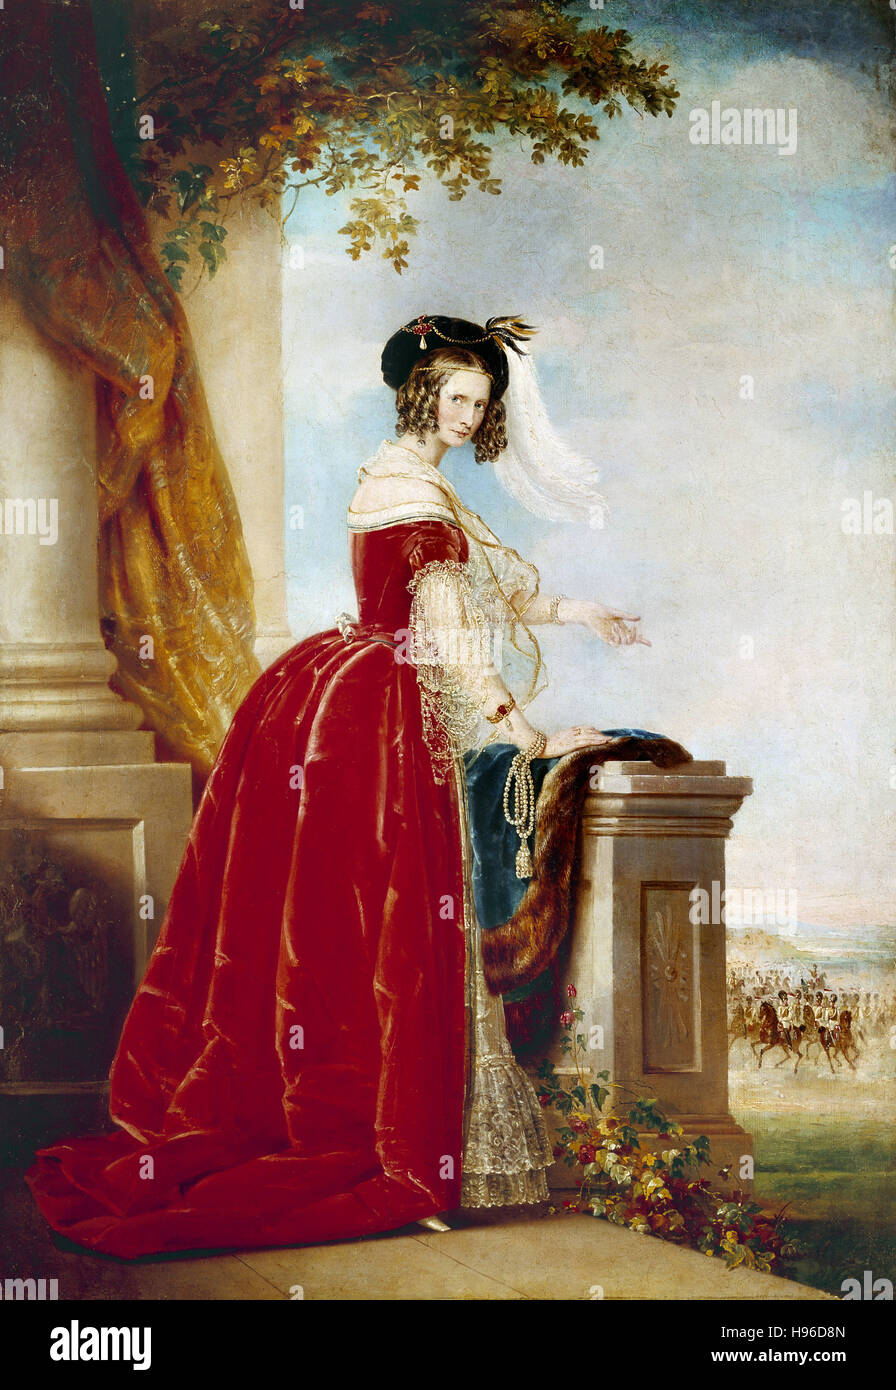 Full-lenght portrait of Empress Alexandra Feodorovna of Russia, wife of Emperor Nicholas I of Russia. - Stock Image